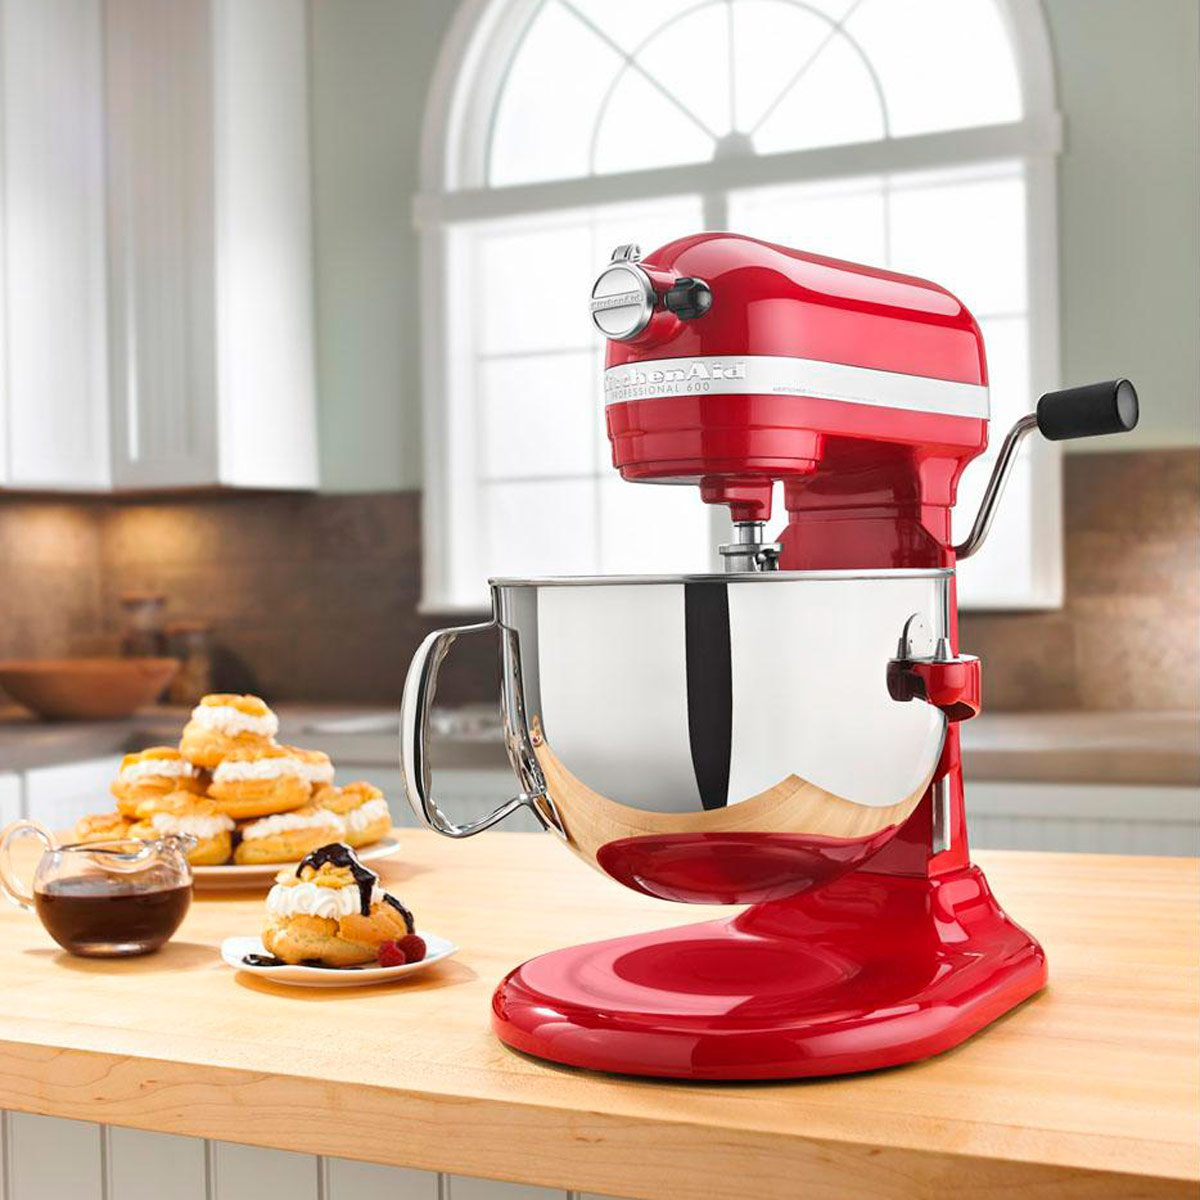 13 Appliances That Will Last 10 Years or More